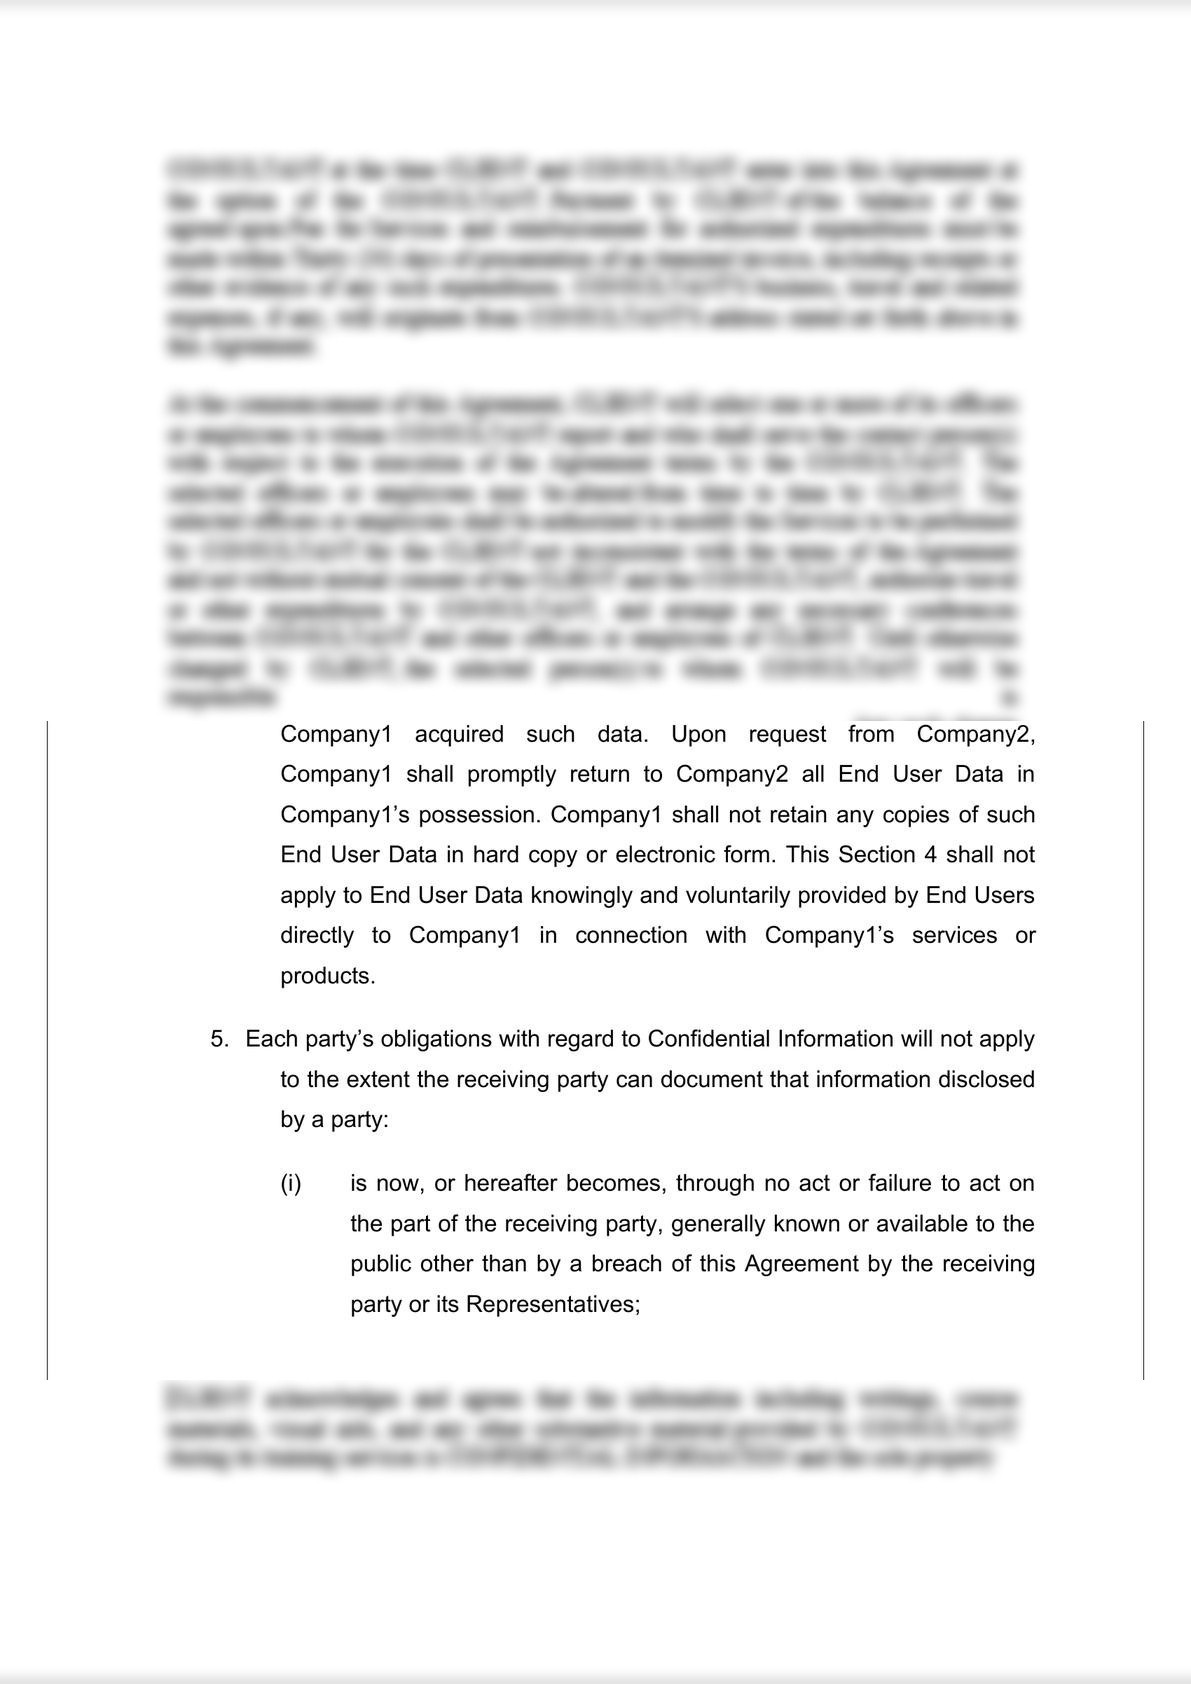 Mutual Non-Disclosure Agreement-2